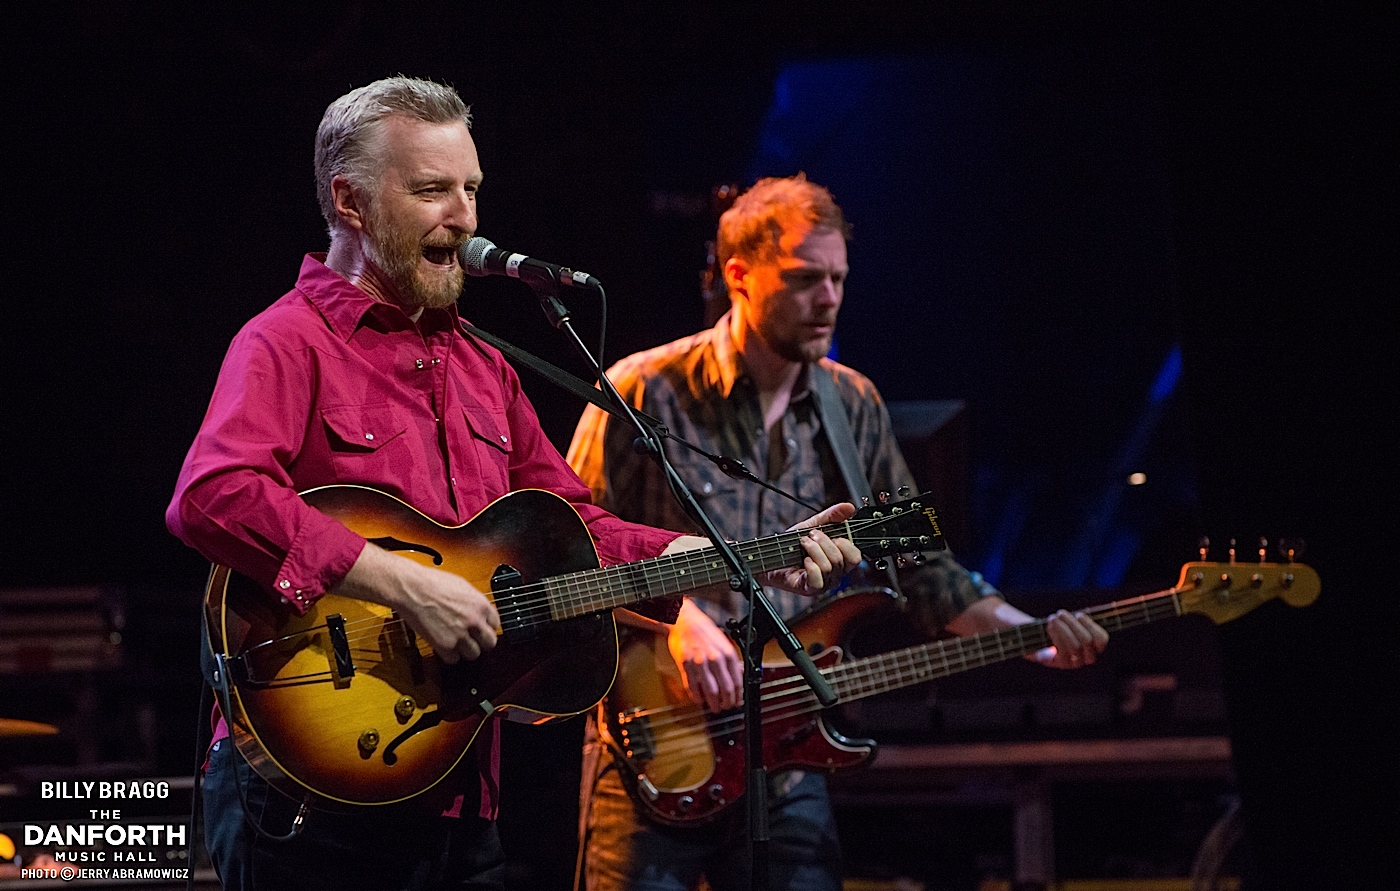 BILLY BRAGG plays a sold out show at The Danforth Music Hall.